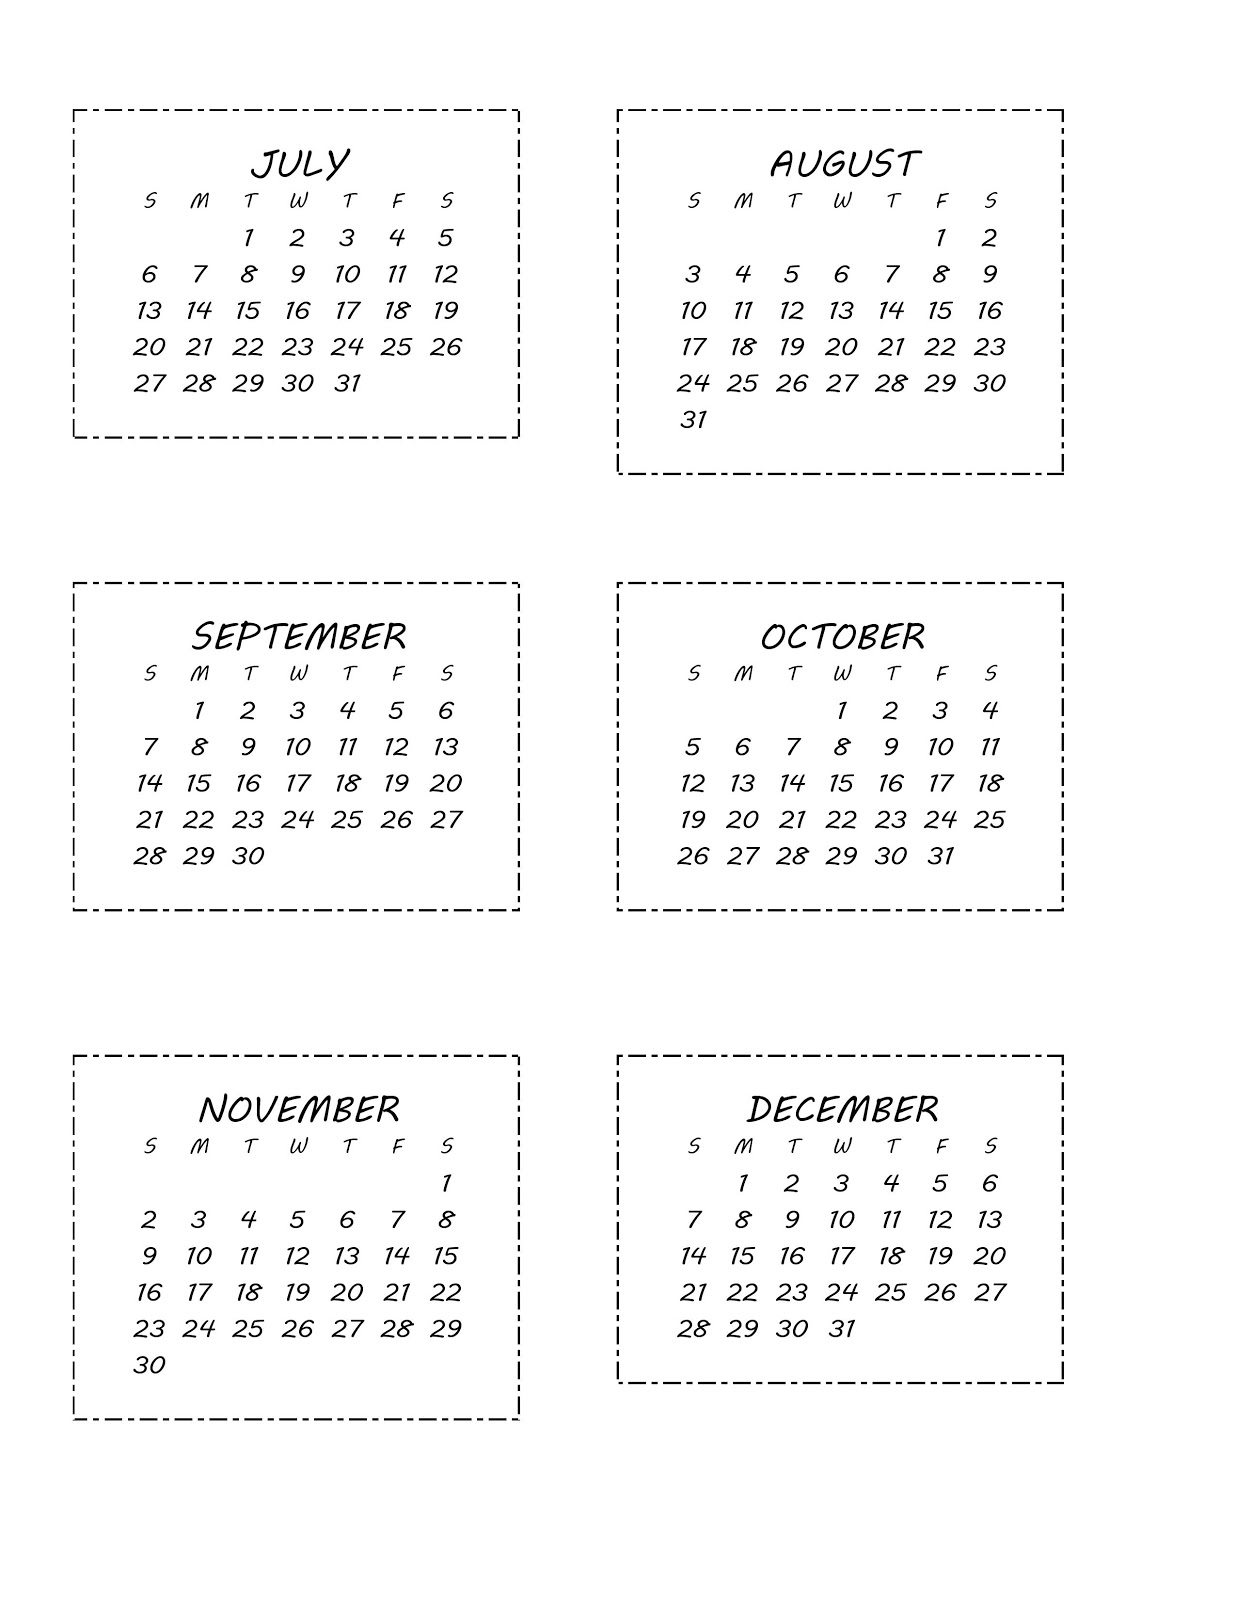 4 month calendar template 2014 - the gallery for printable months of the year labels